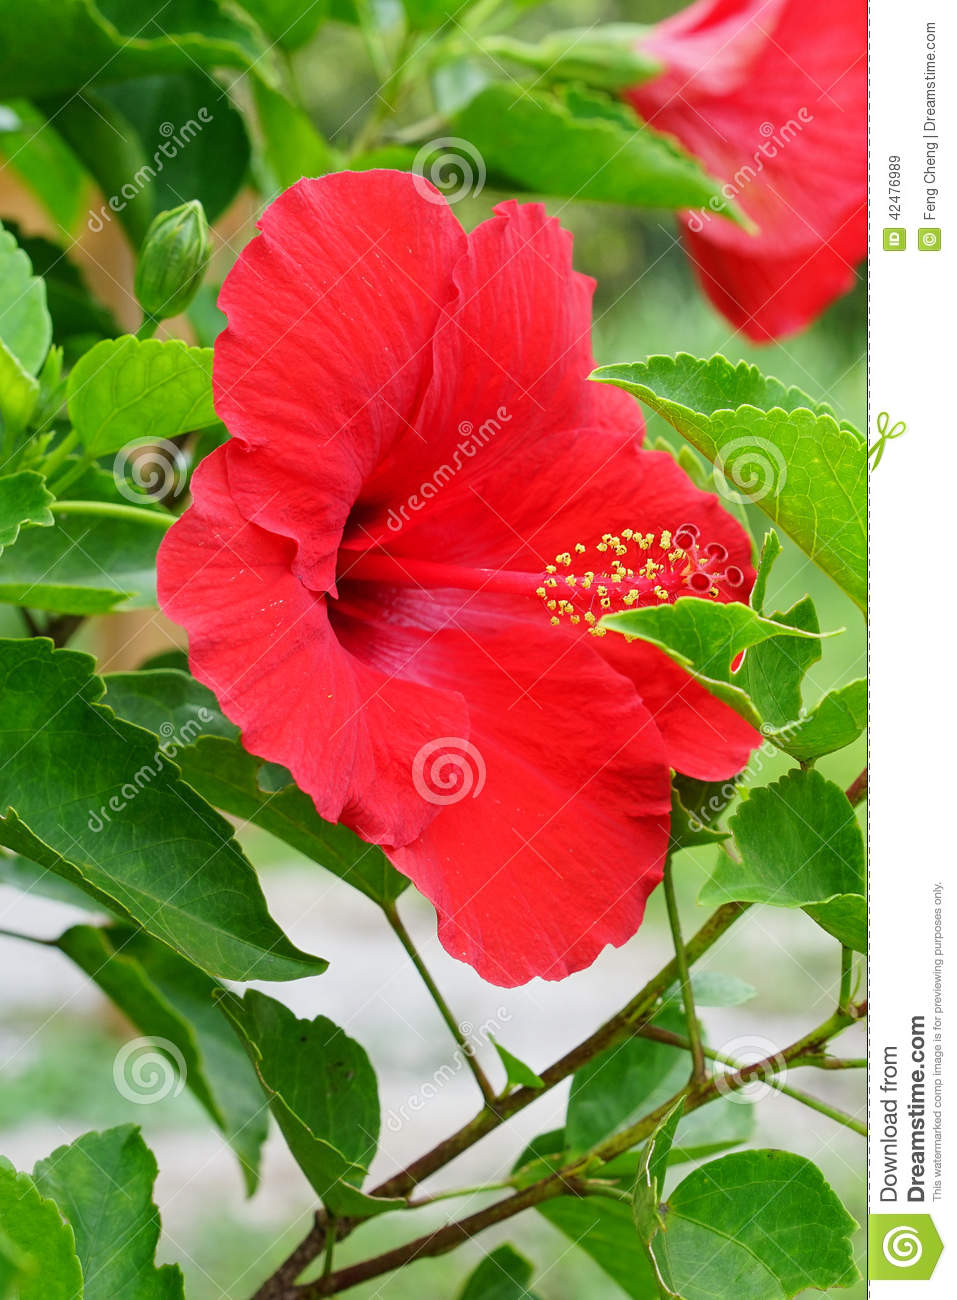 Red Chinese Hibiscus Flower Stock Image Image Of Mini Flowering